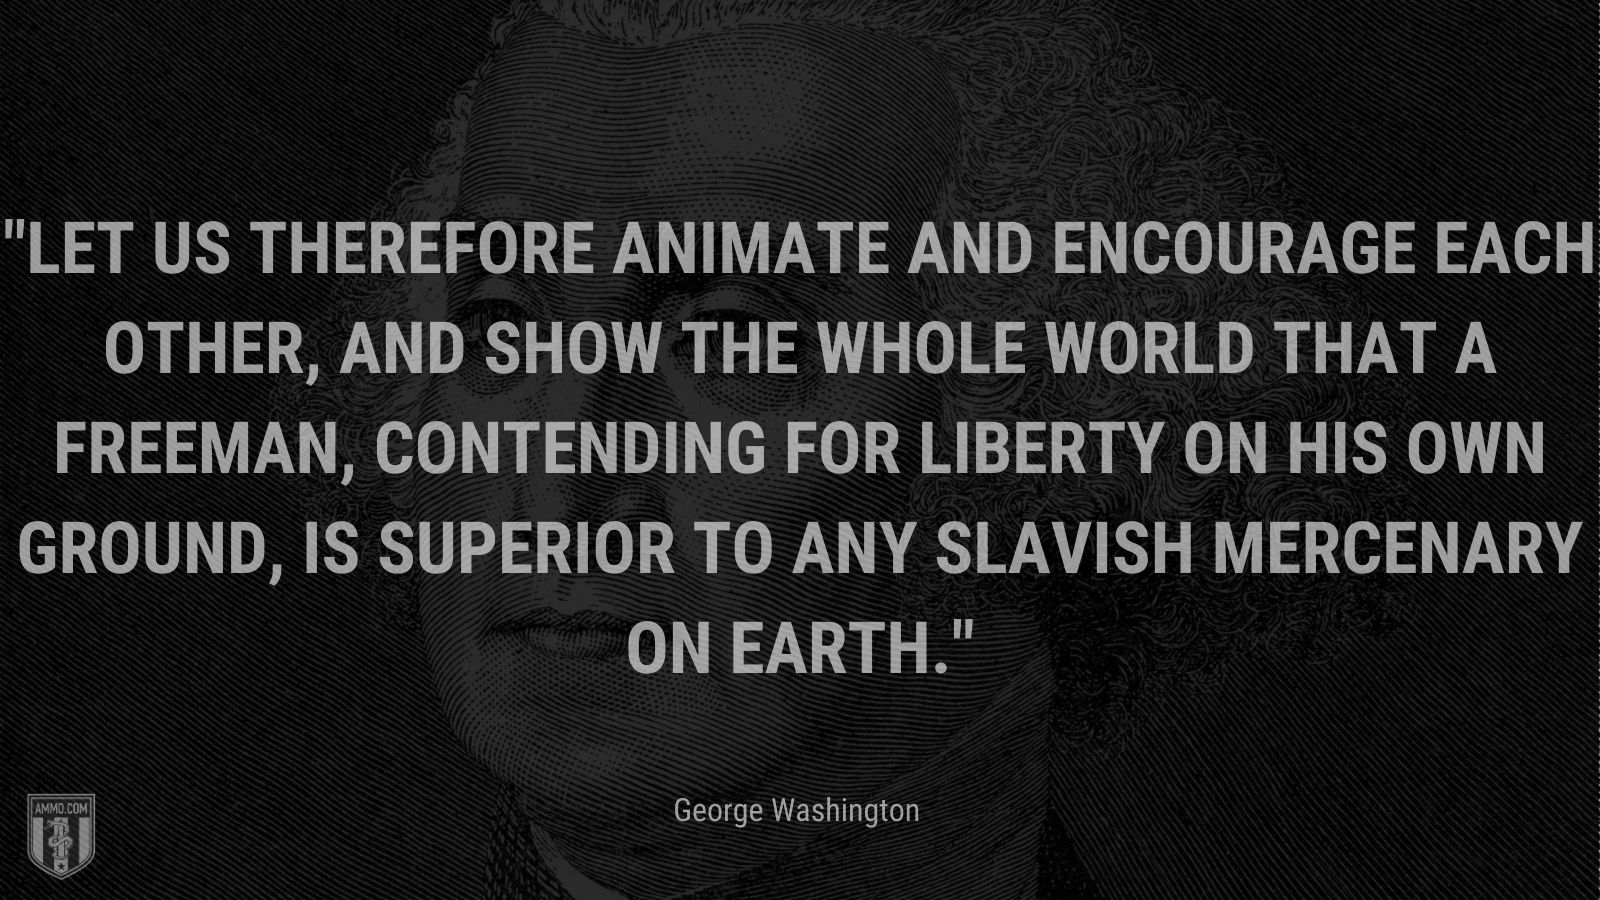 """""""Let us therefore animate and encourage each other, and show the whole world that a Freeman, contending for liberty on his own ground, is superior to any slavish mercenary on earth."""" - George Washington"""